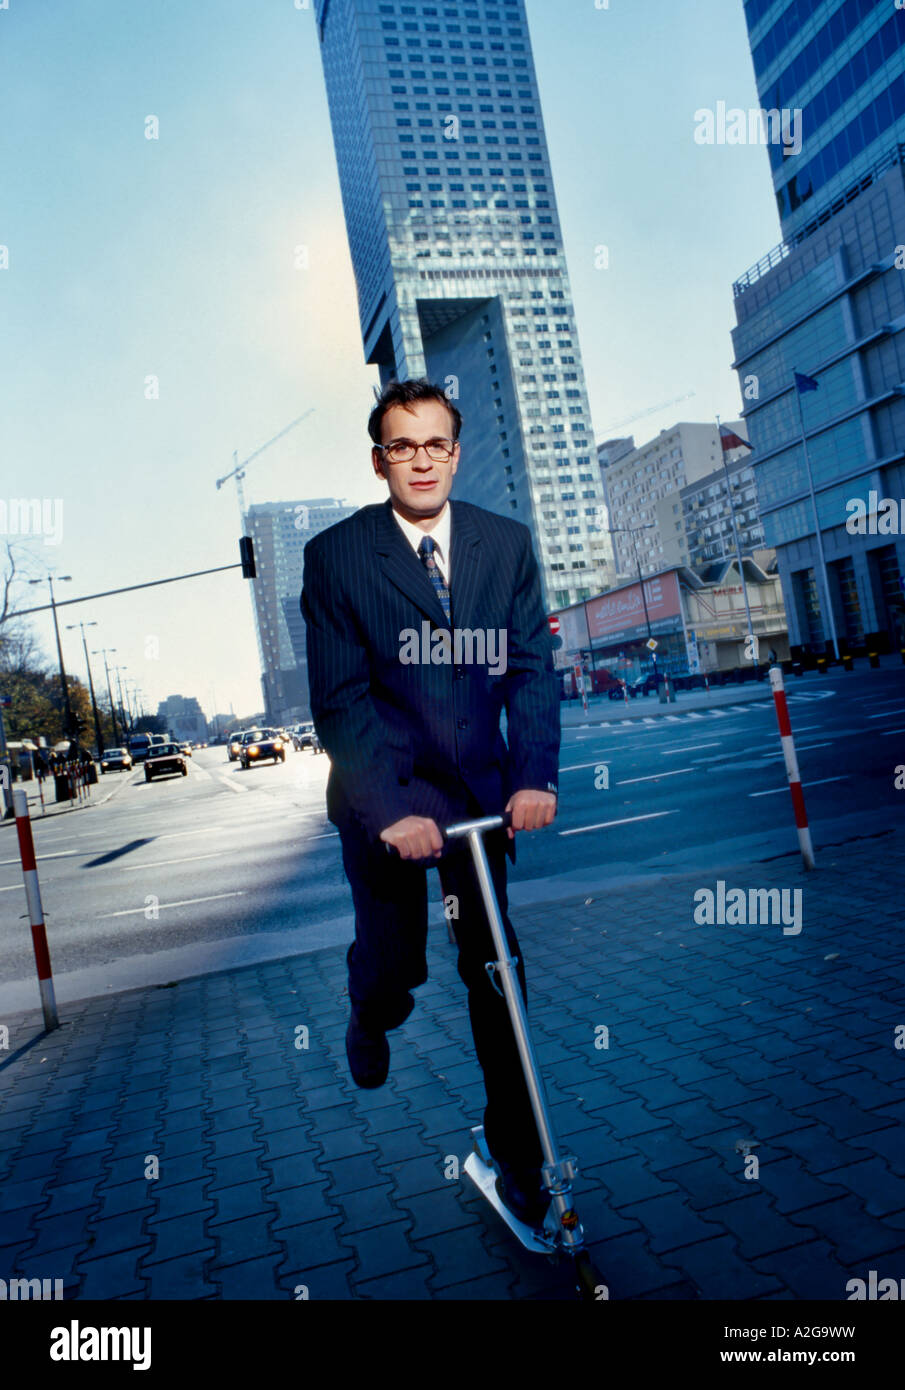 1213411 outdoor autumn day street building buildings street streets man young 25 30 dark haired glasses business - Stock Image